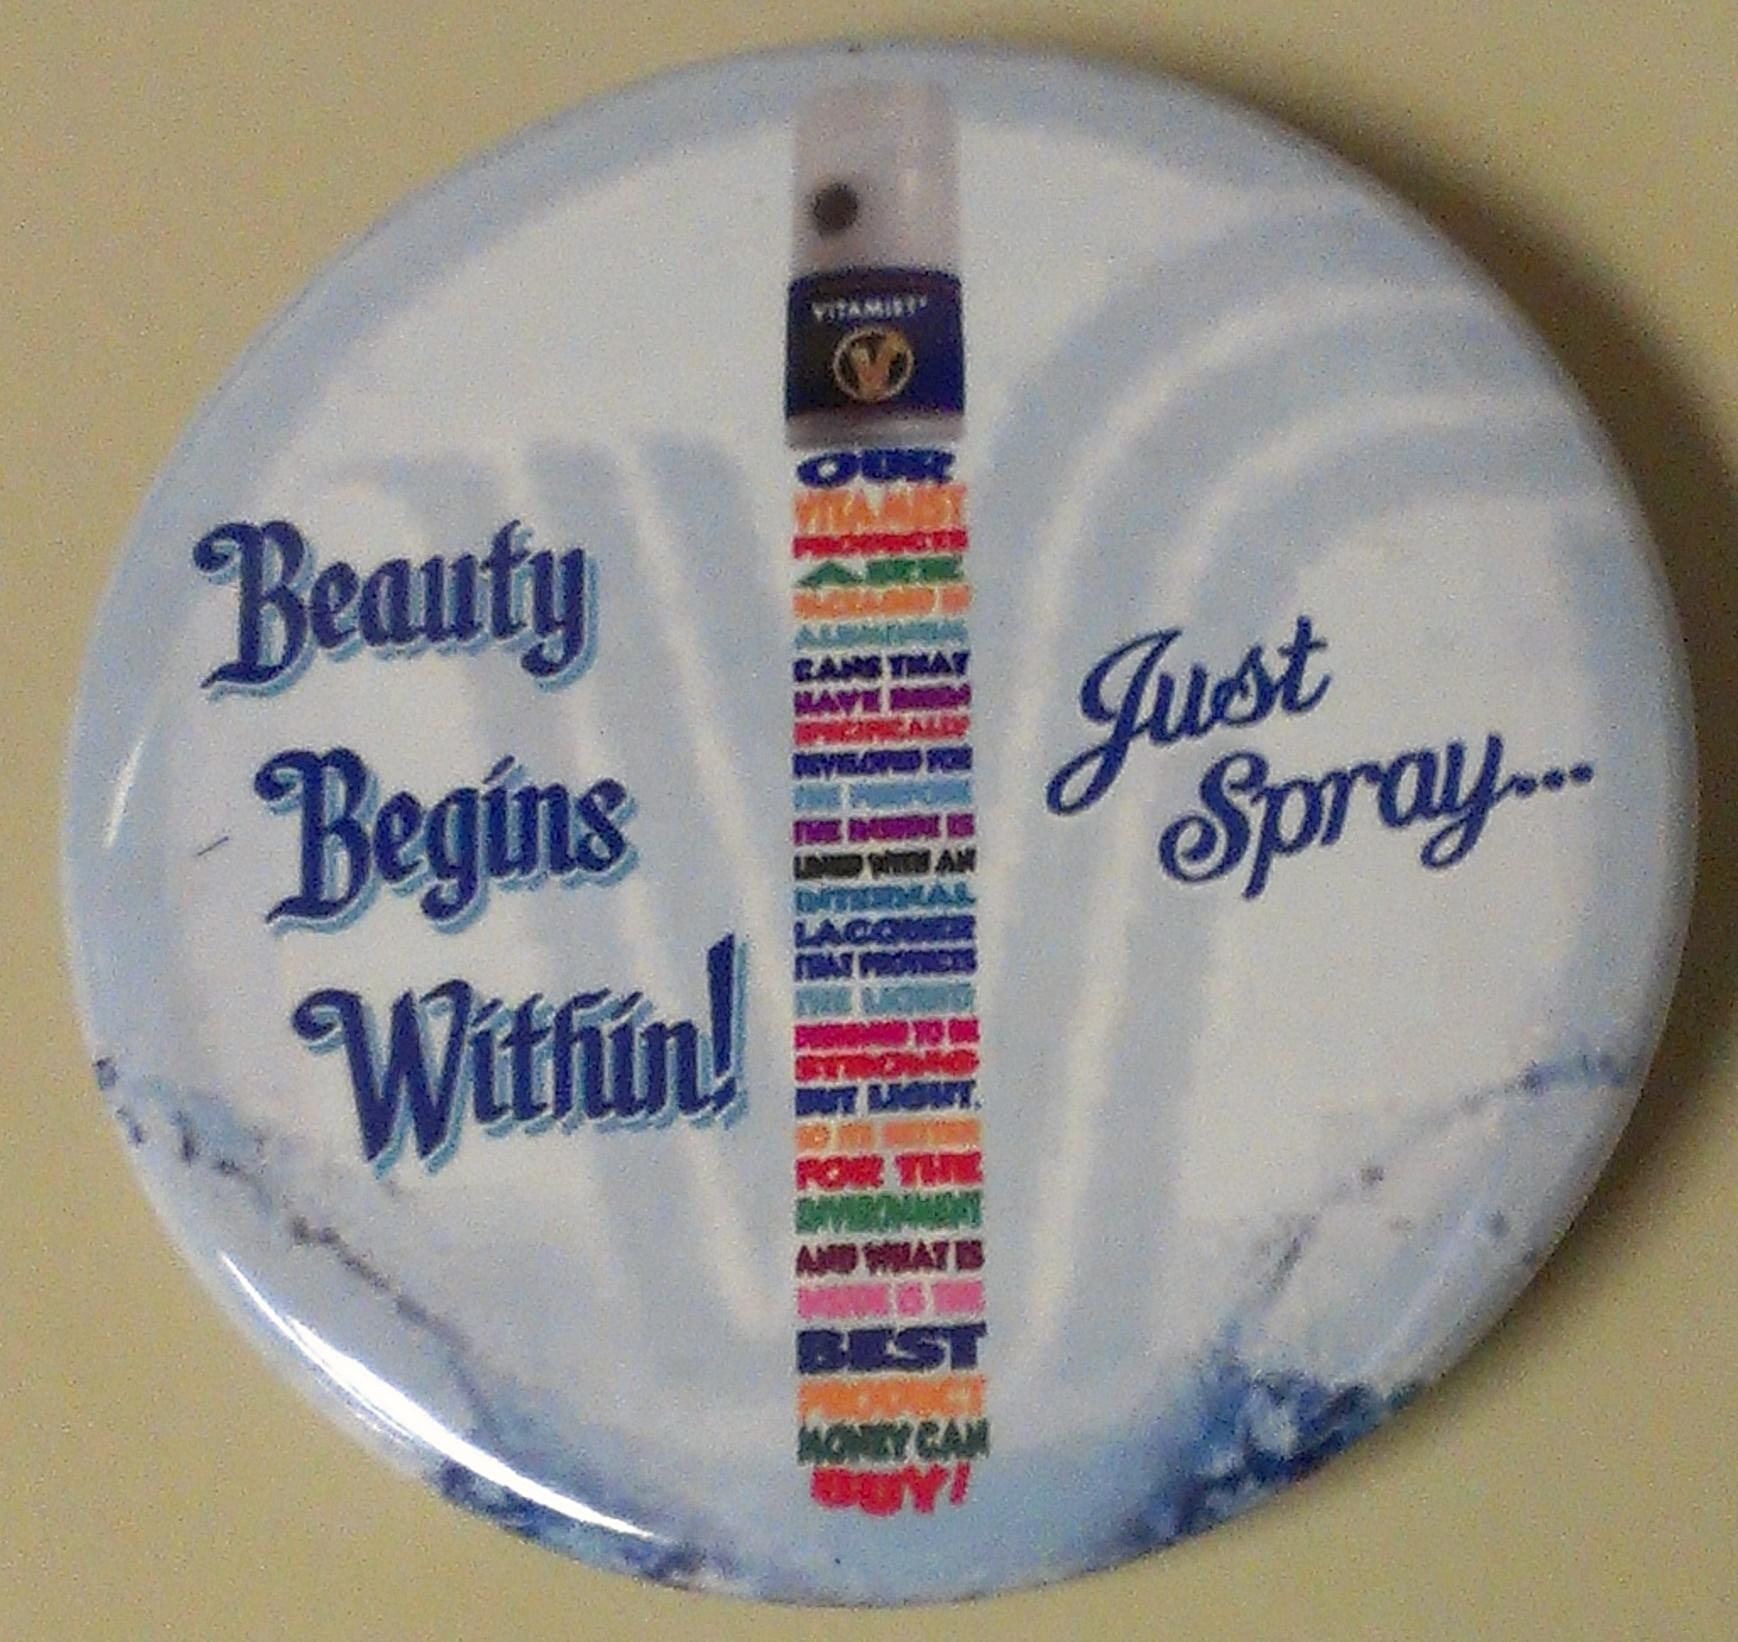 Beauty Begins Within Button